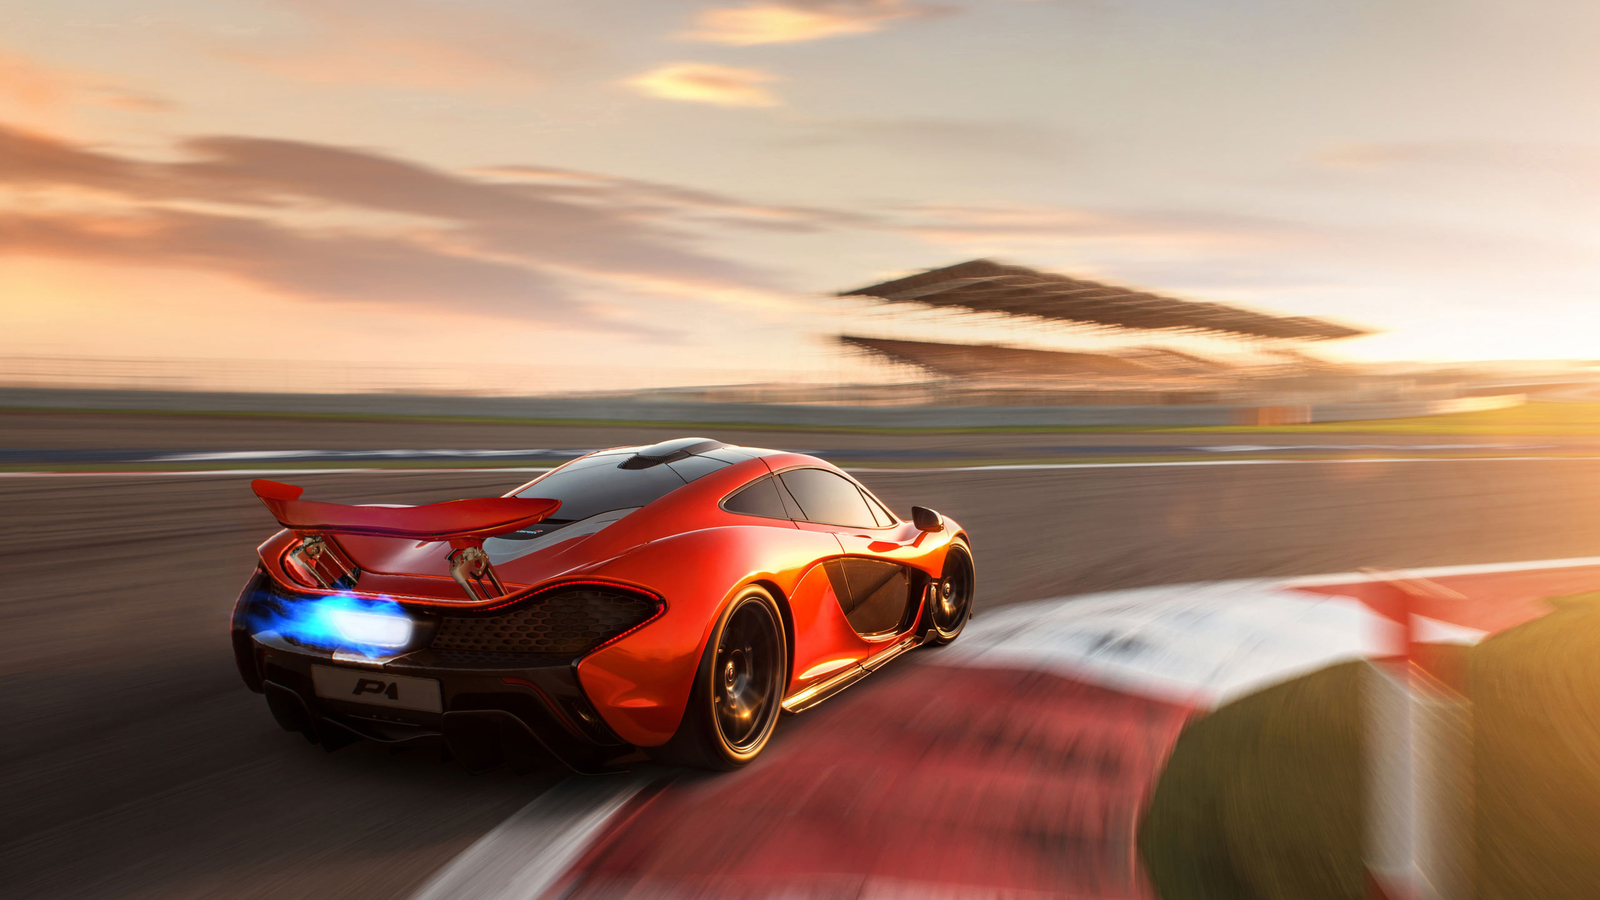 McLaren supercar wallpaper download 49679